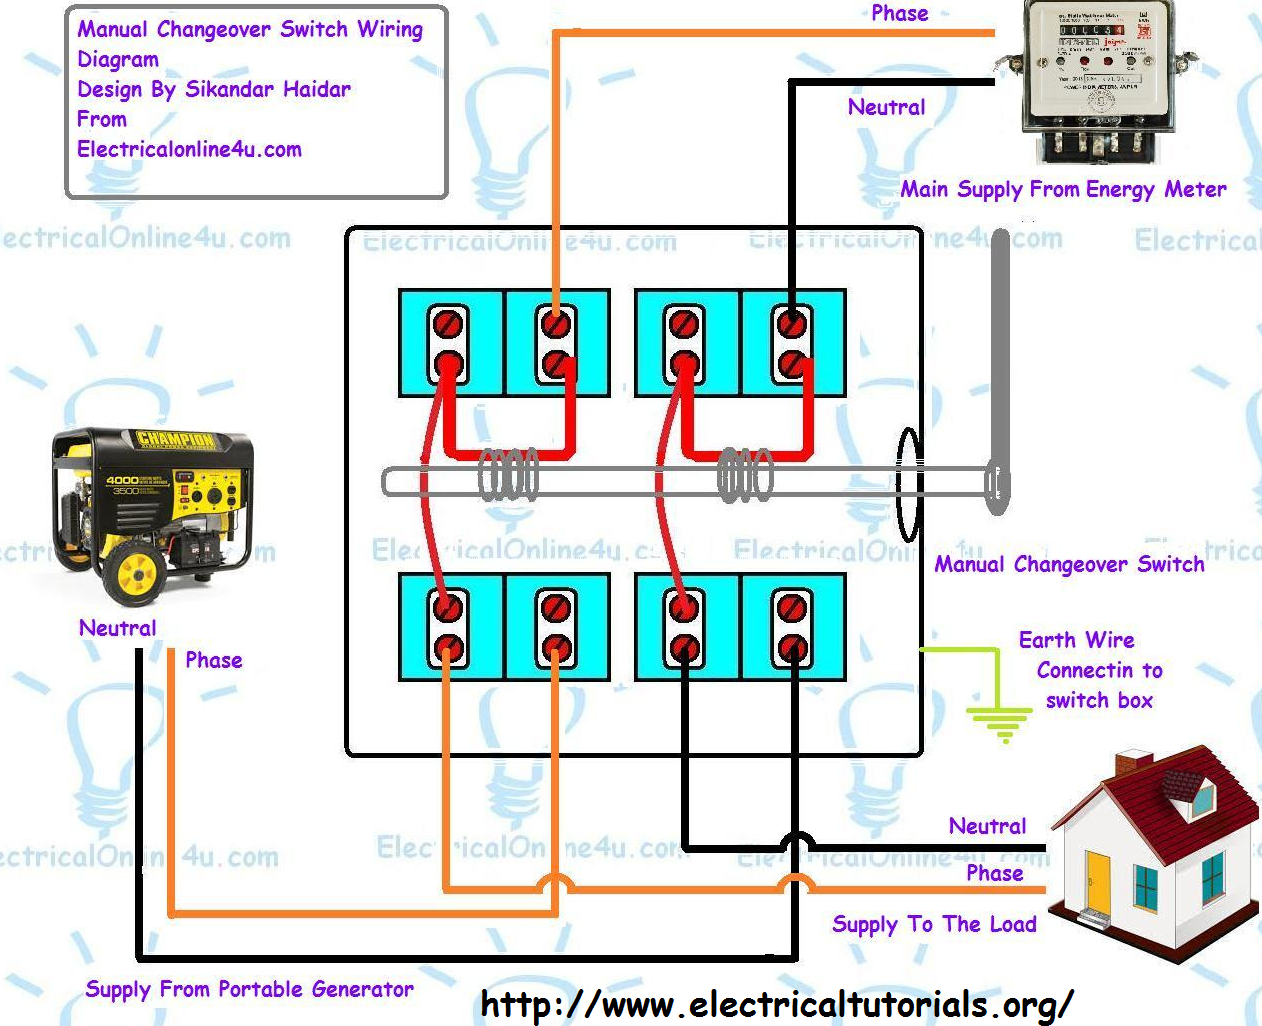 3 phase wiring for dummies york diagrams air conditioners transfer switch diagram modern design of